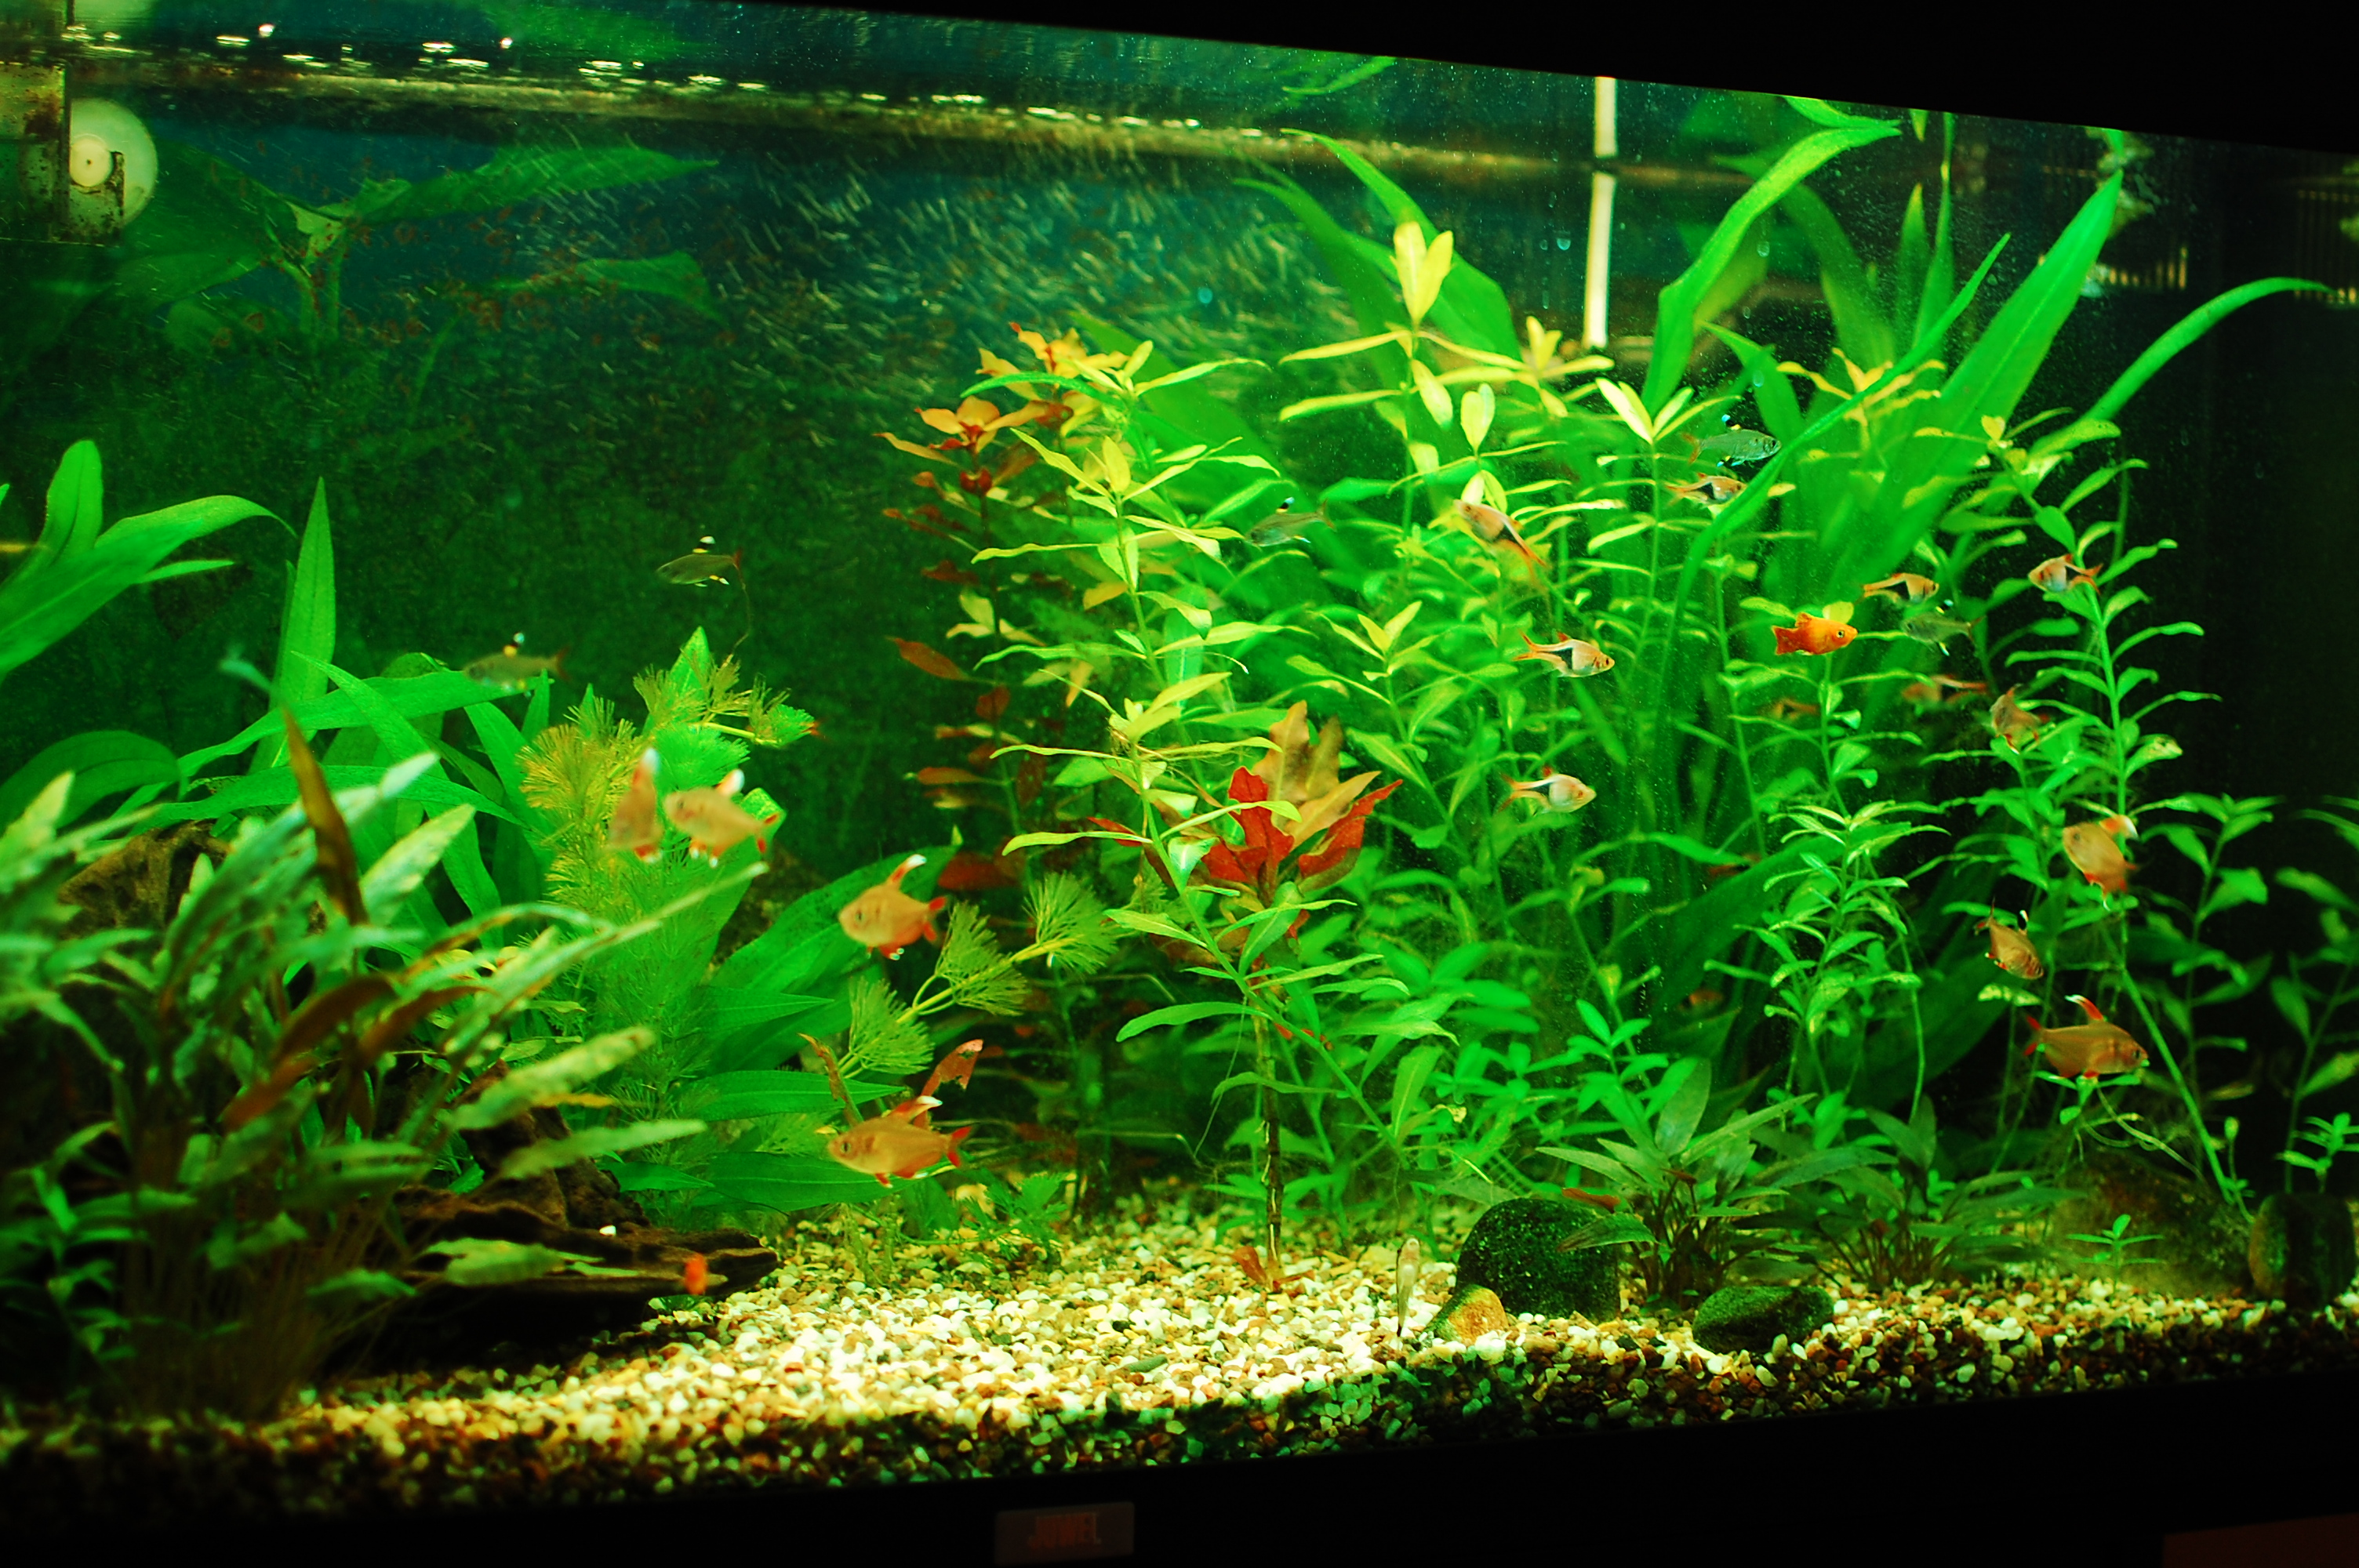 Our freshwater aquarium, 30.7.2011